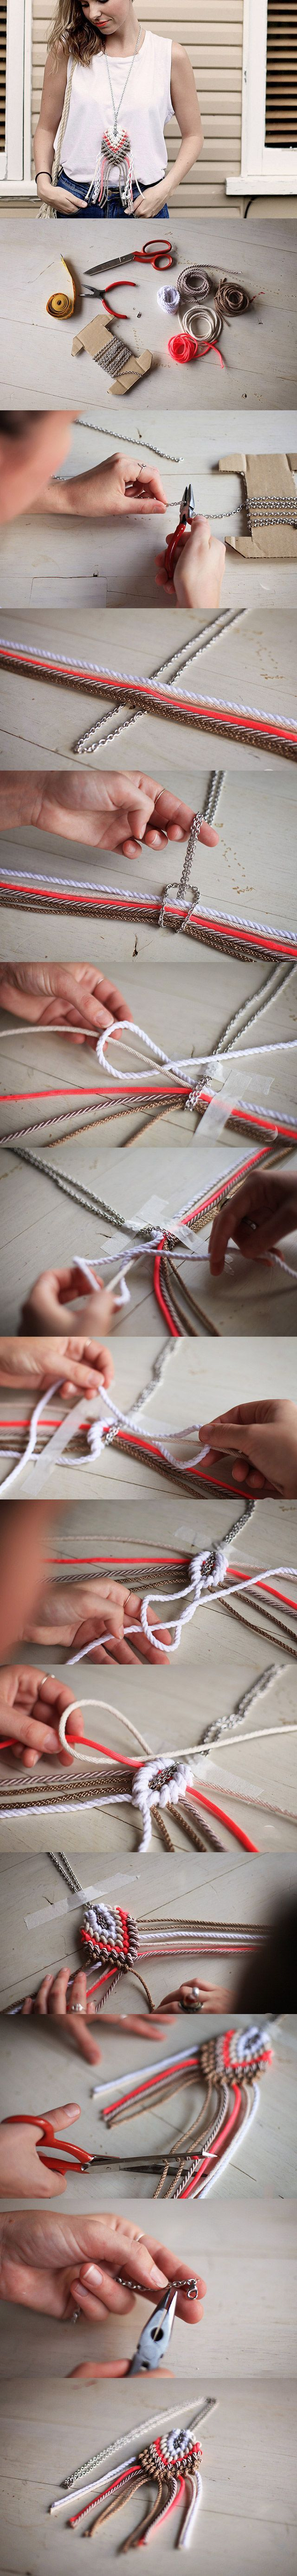 DIY: Jewelry Chains Cool Ideas: